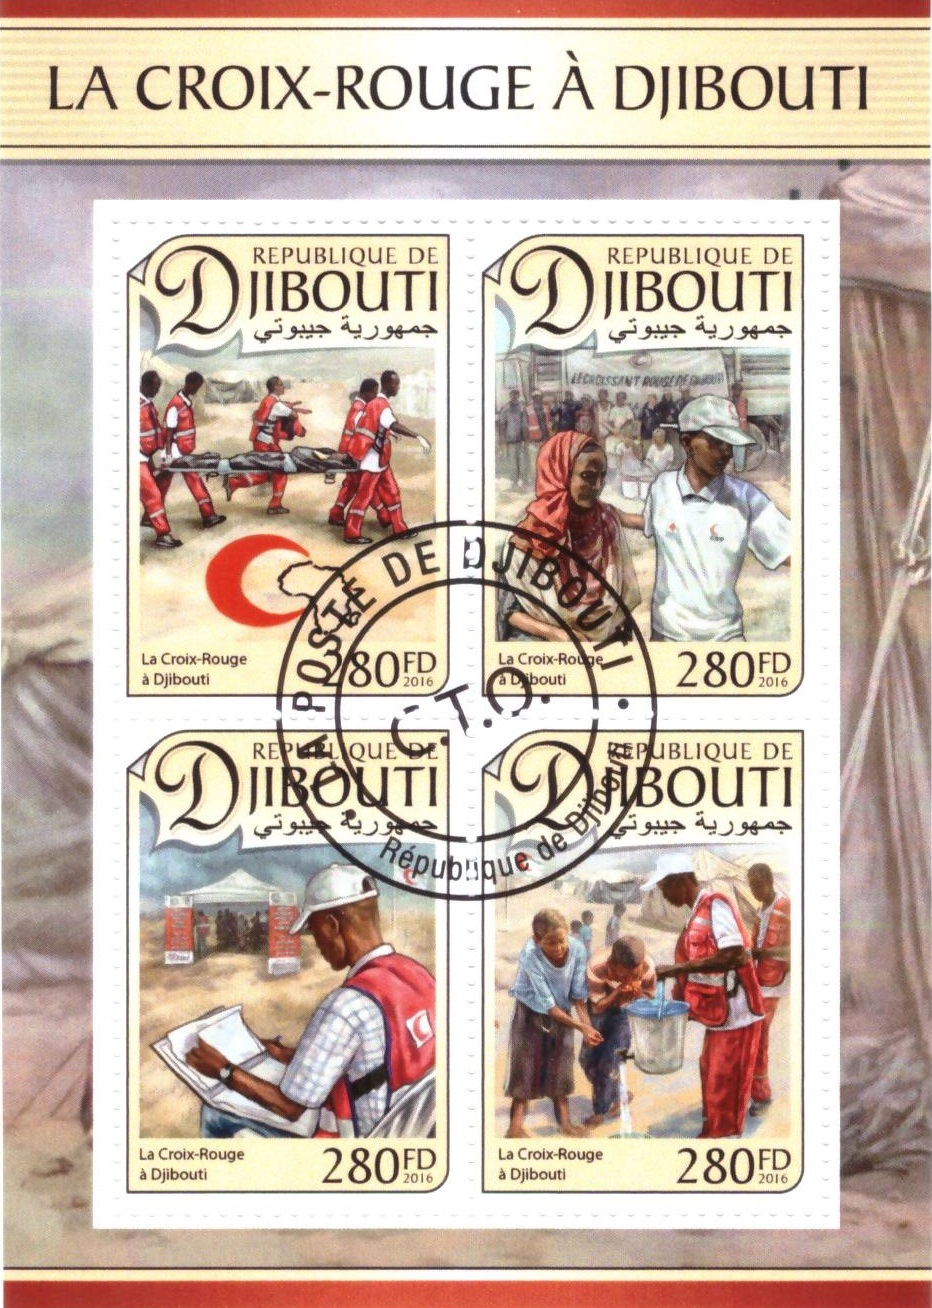 timbres_croix_rouge_djibouti_2016.jpg